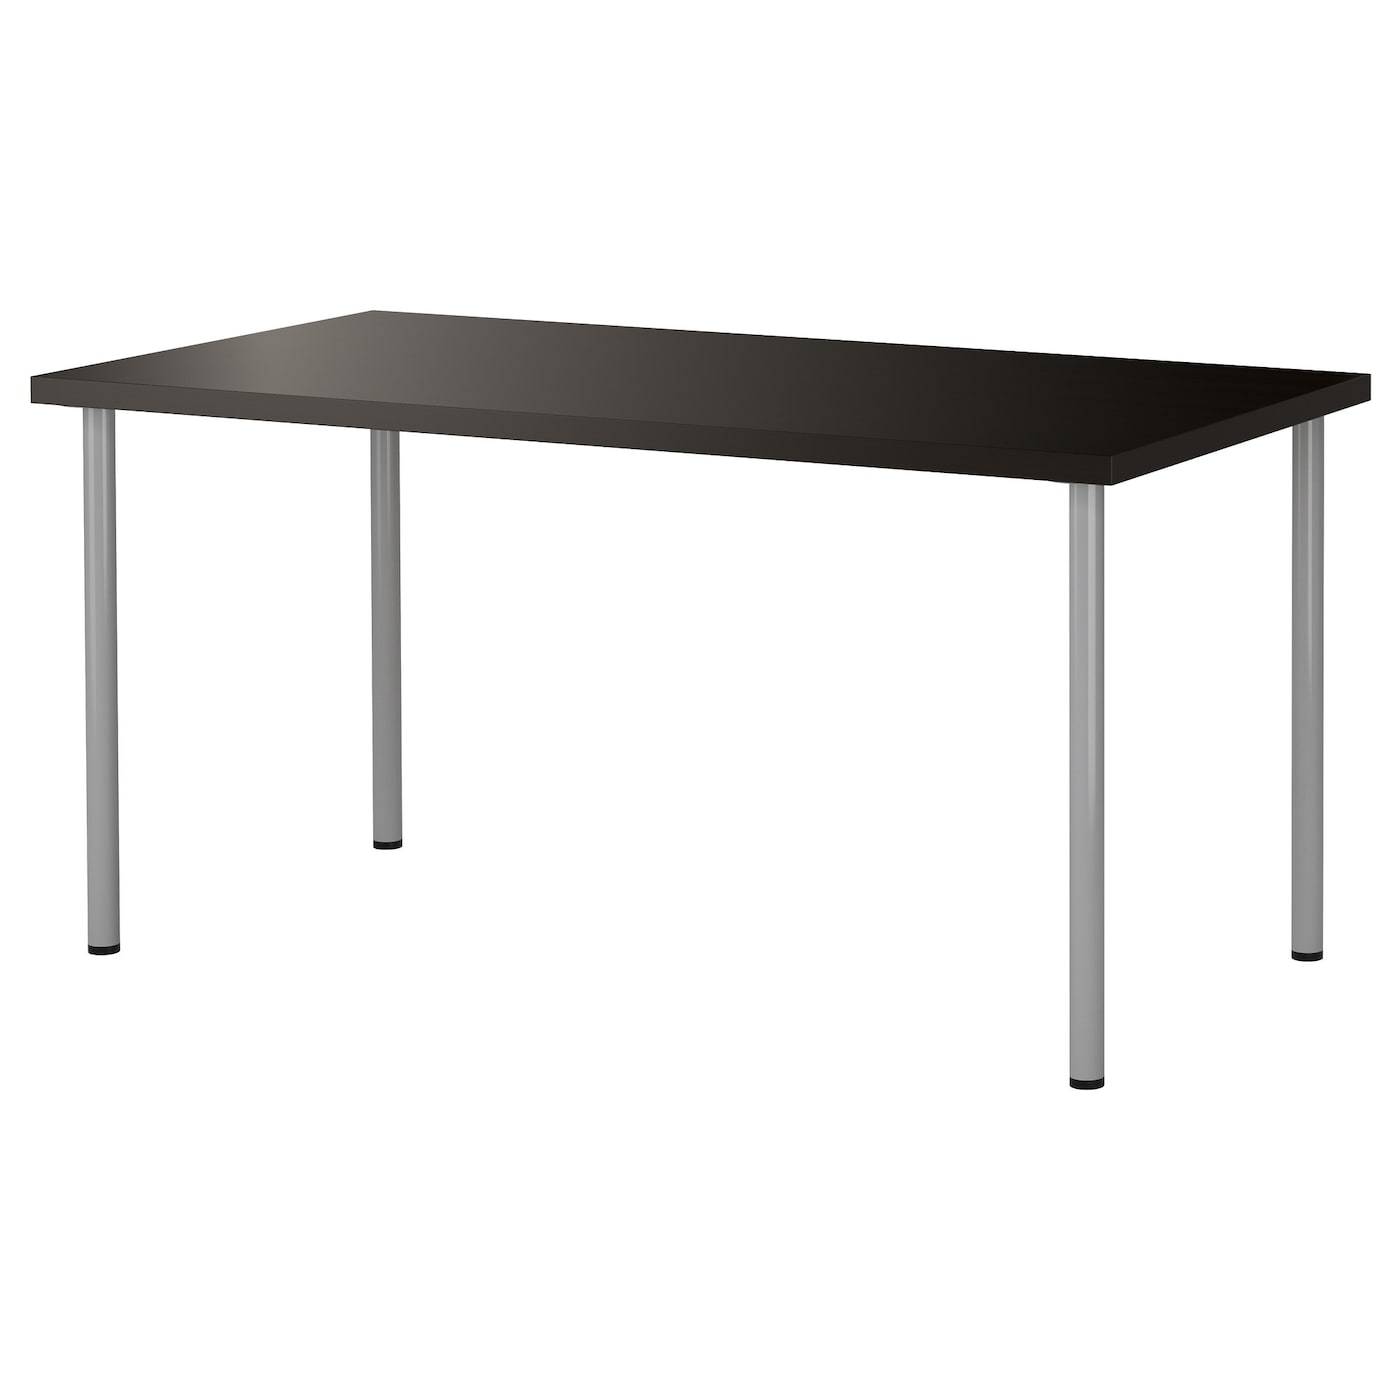 Adils Linnmon Table Black Brown Silver Colour 150 X 75 Cm